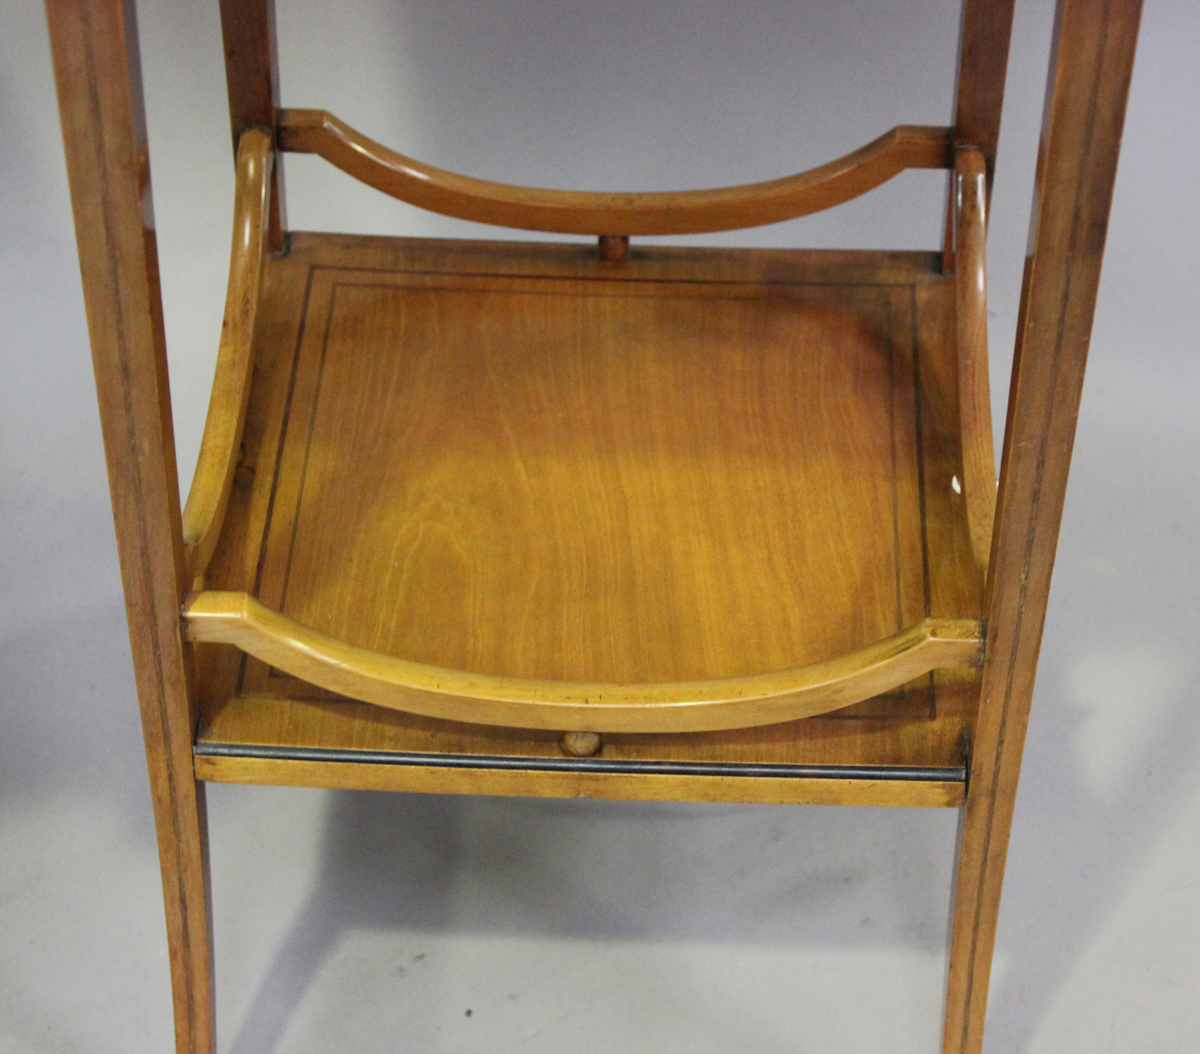 An Edwardian satinwood two-tier square occasional table with foliate inlaid decoration, height 64cm, - Image 3 of 6